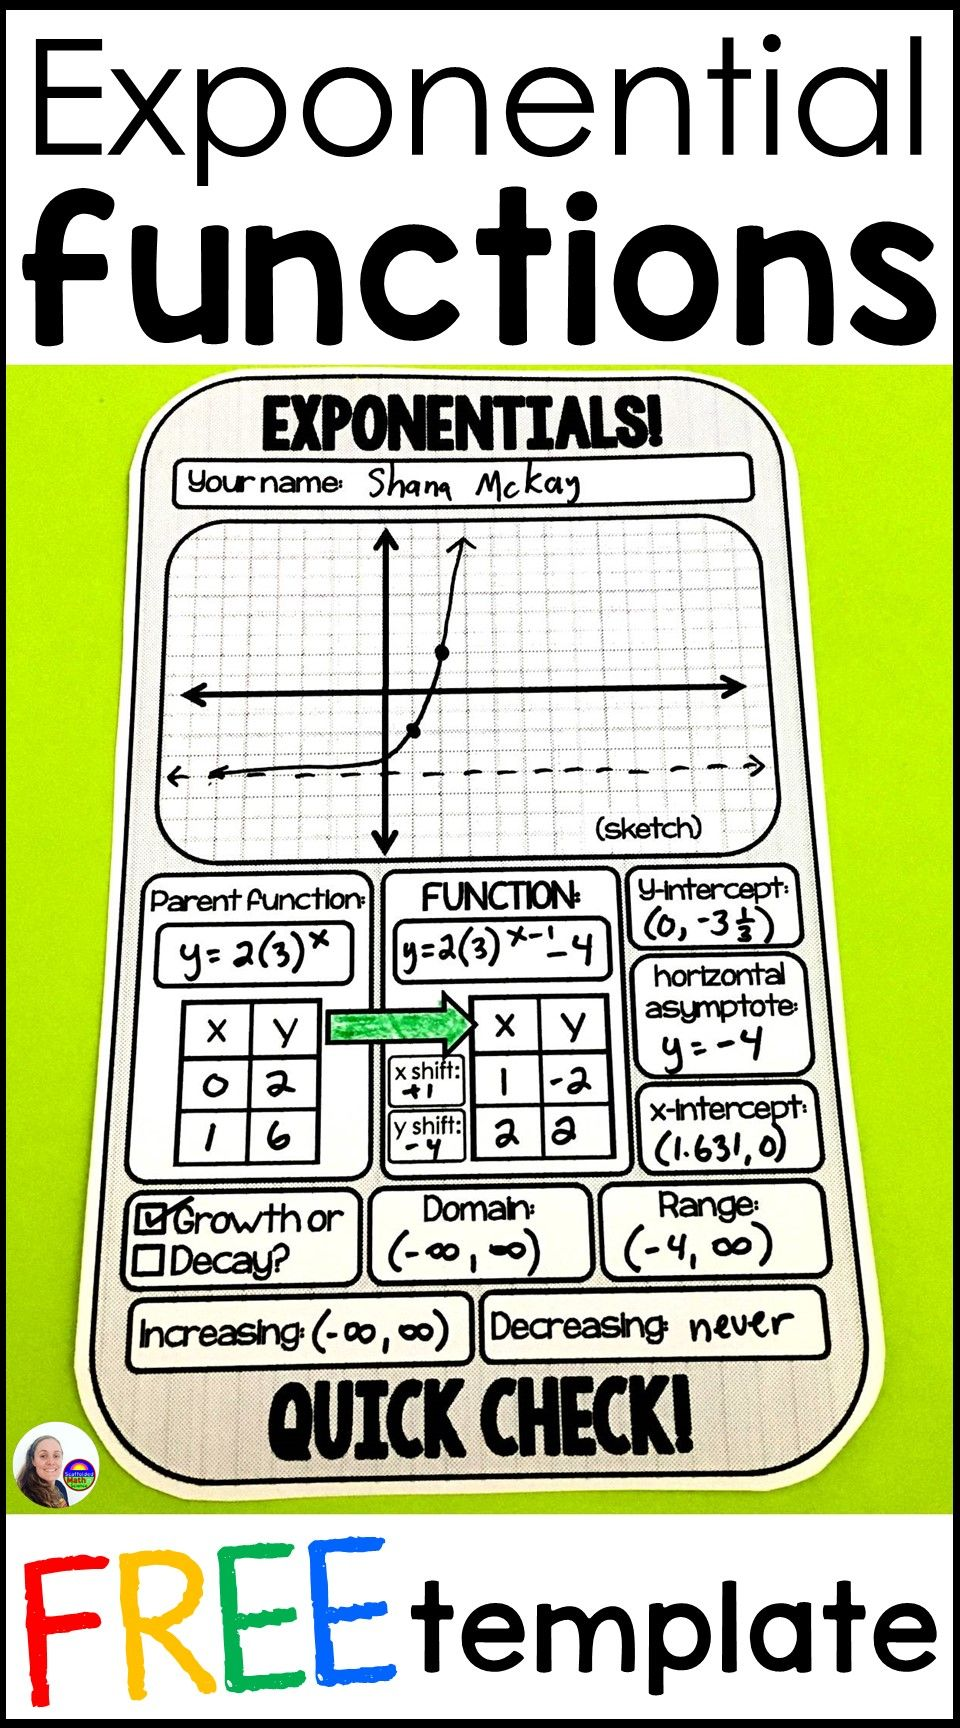 Exponential functions quick check and warmup template in